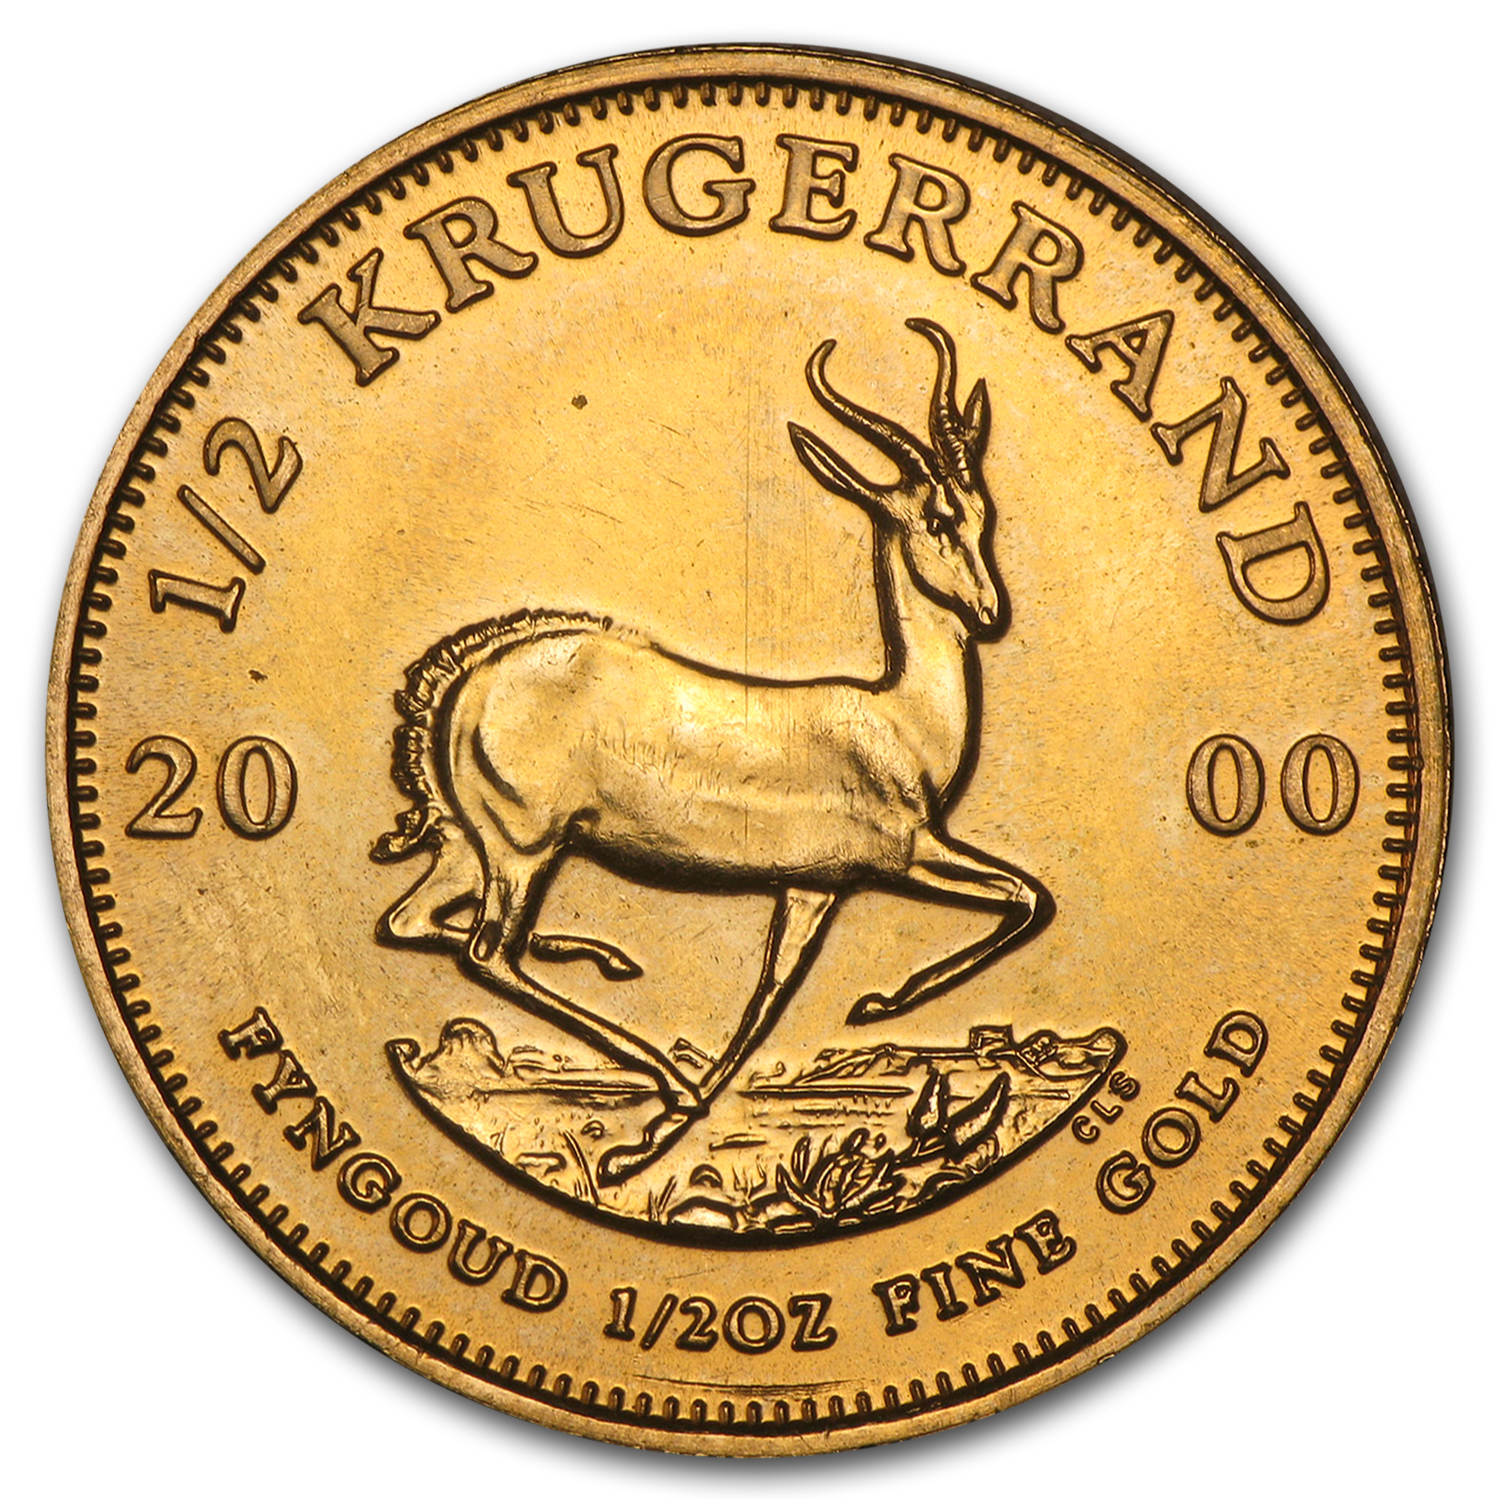 2000 South Africa 1/2 oz Gold Krugerrand